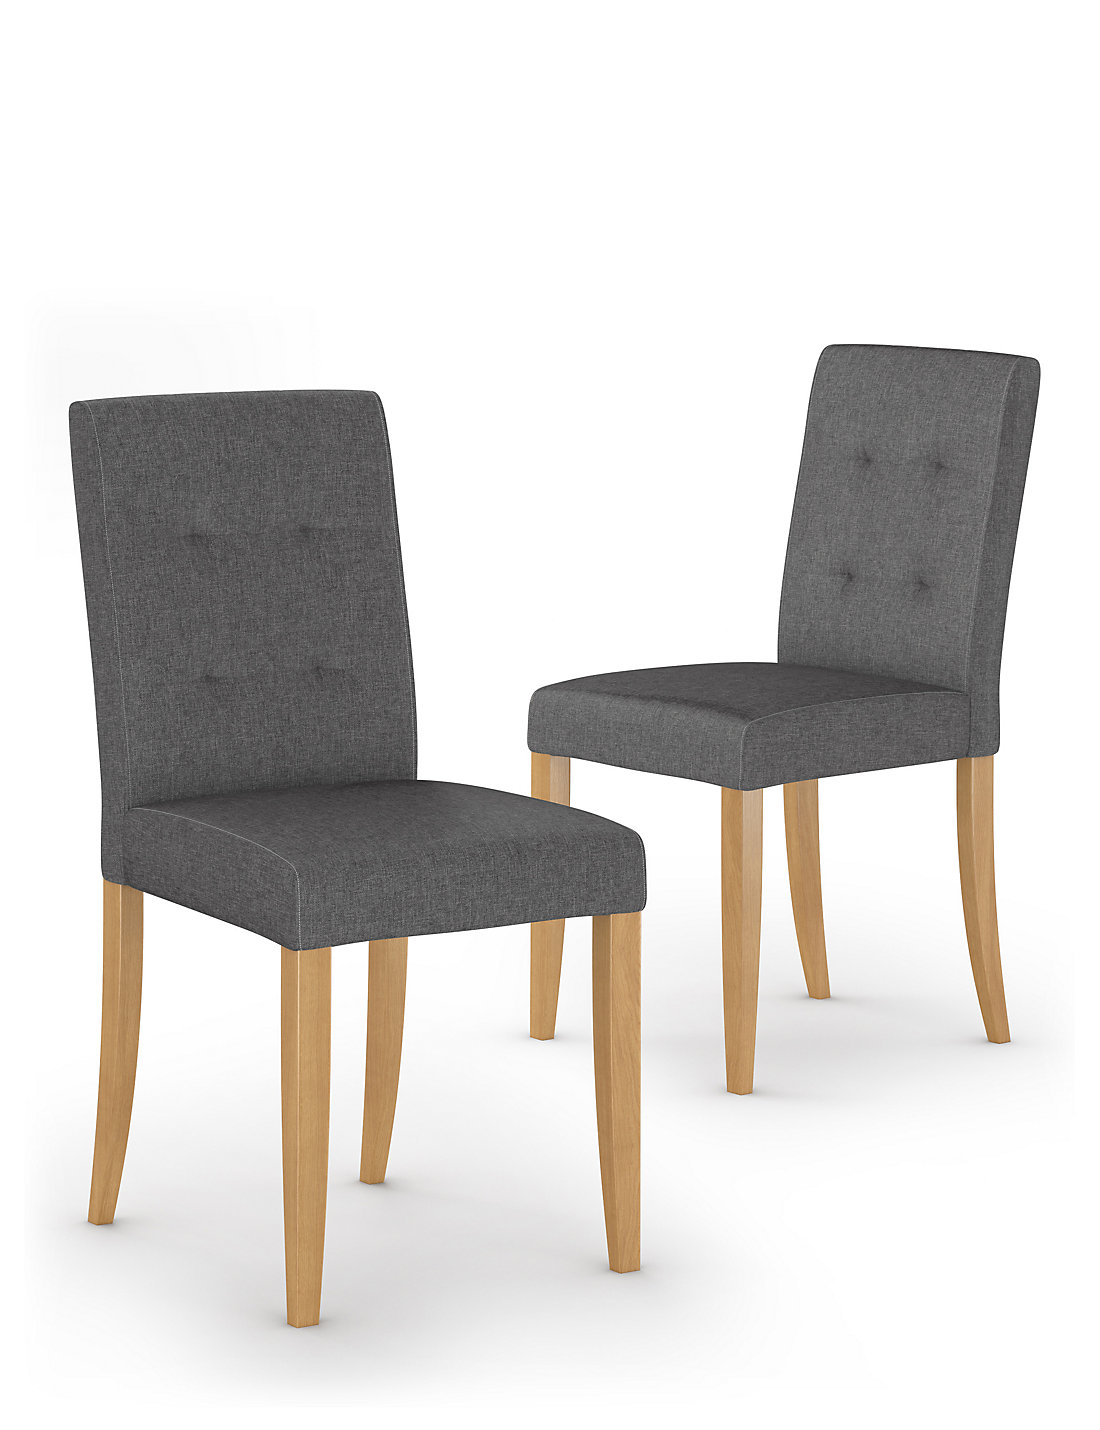 2 Colby Dining Chair. Kitchen   Dining Room Furniture   Offers   M S